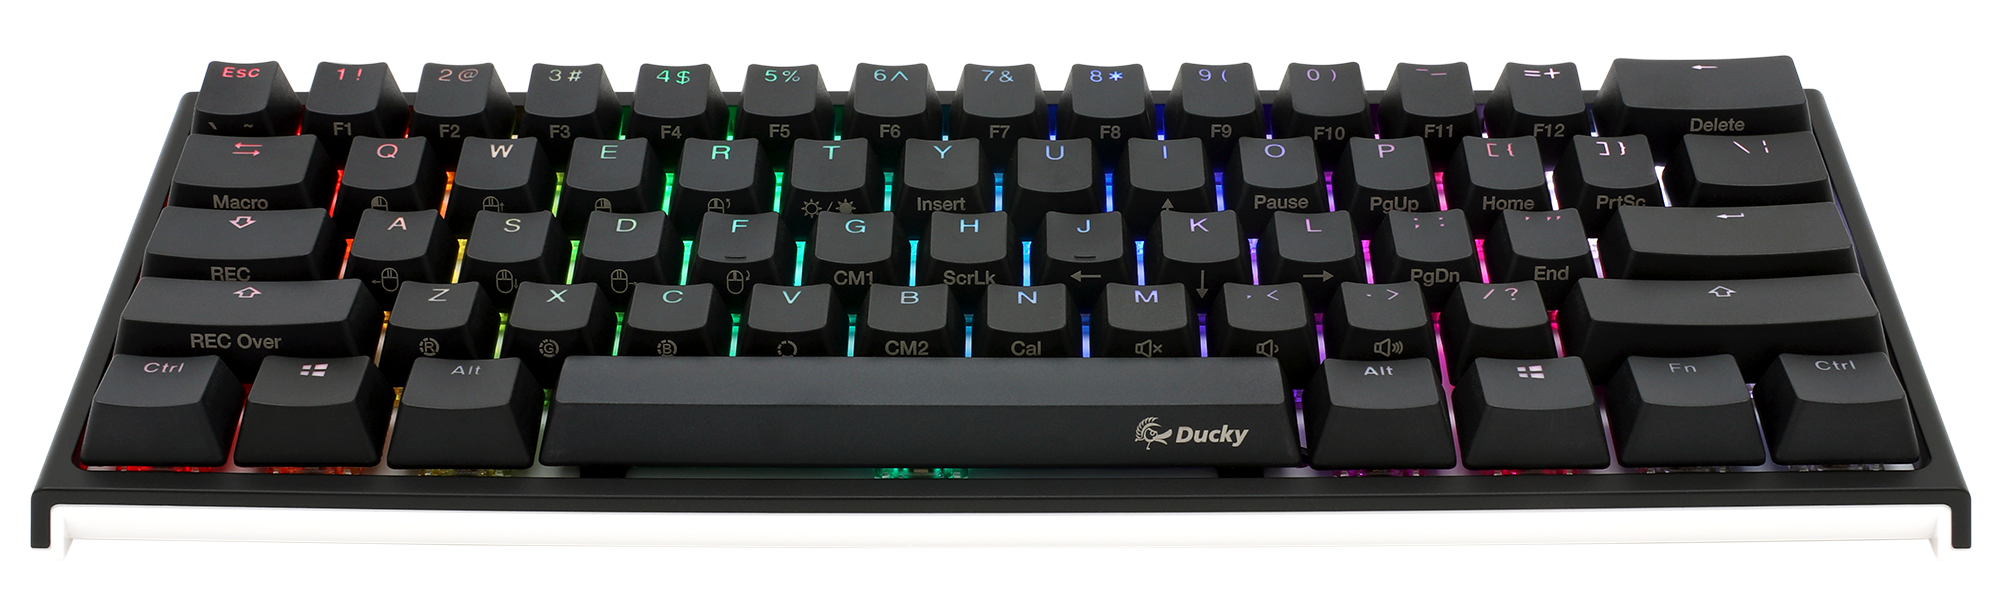 Ducky One 2 Mini RGB LED 60% Double Shot PBT Mechanical Keyboard with  Cherry MX Brown, Blue, Red, Black, Silver, or Silent Red switches